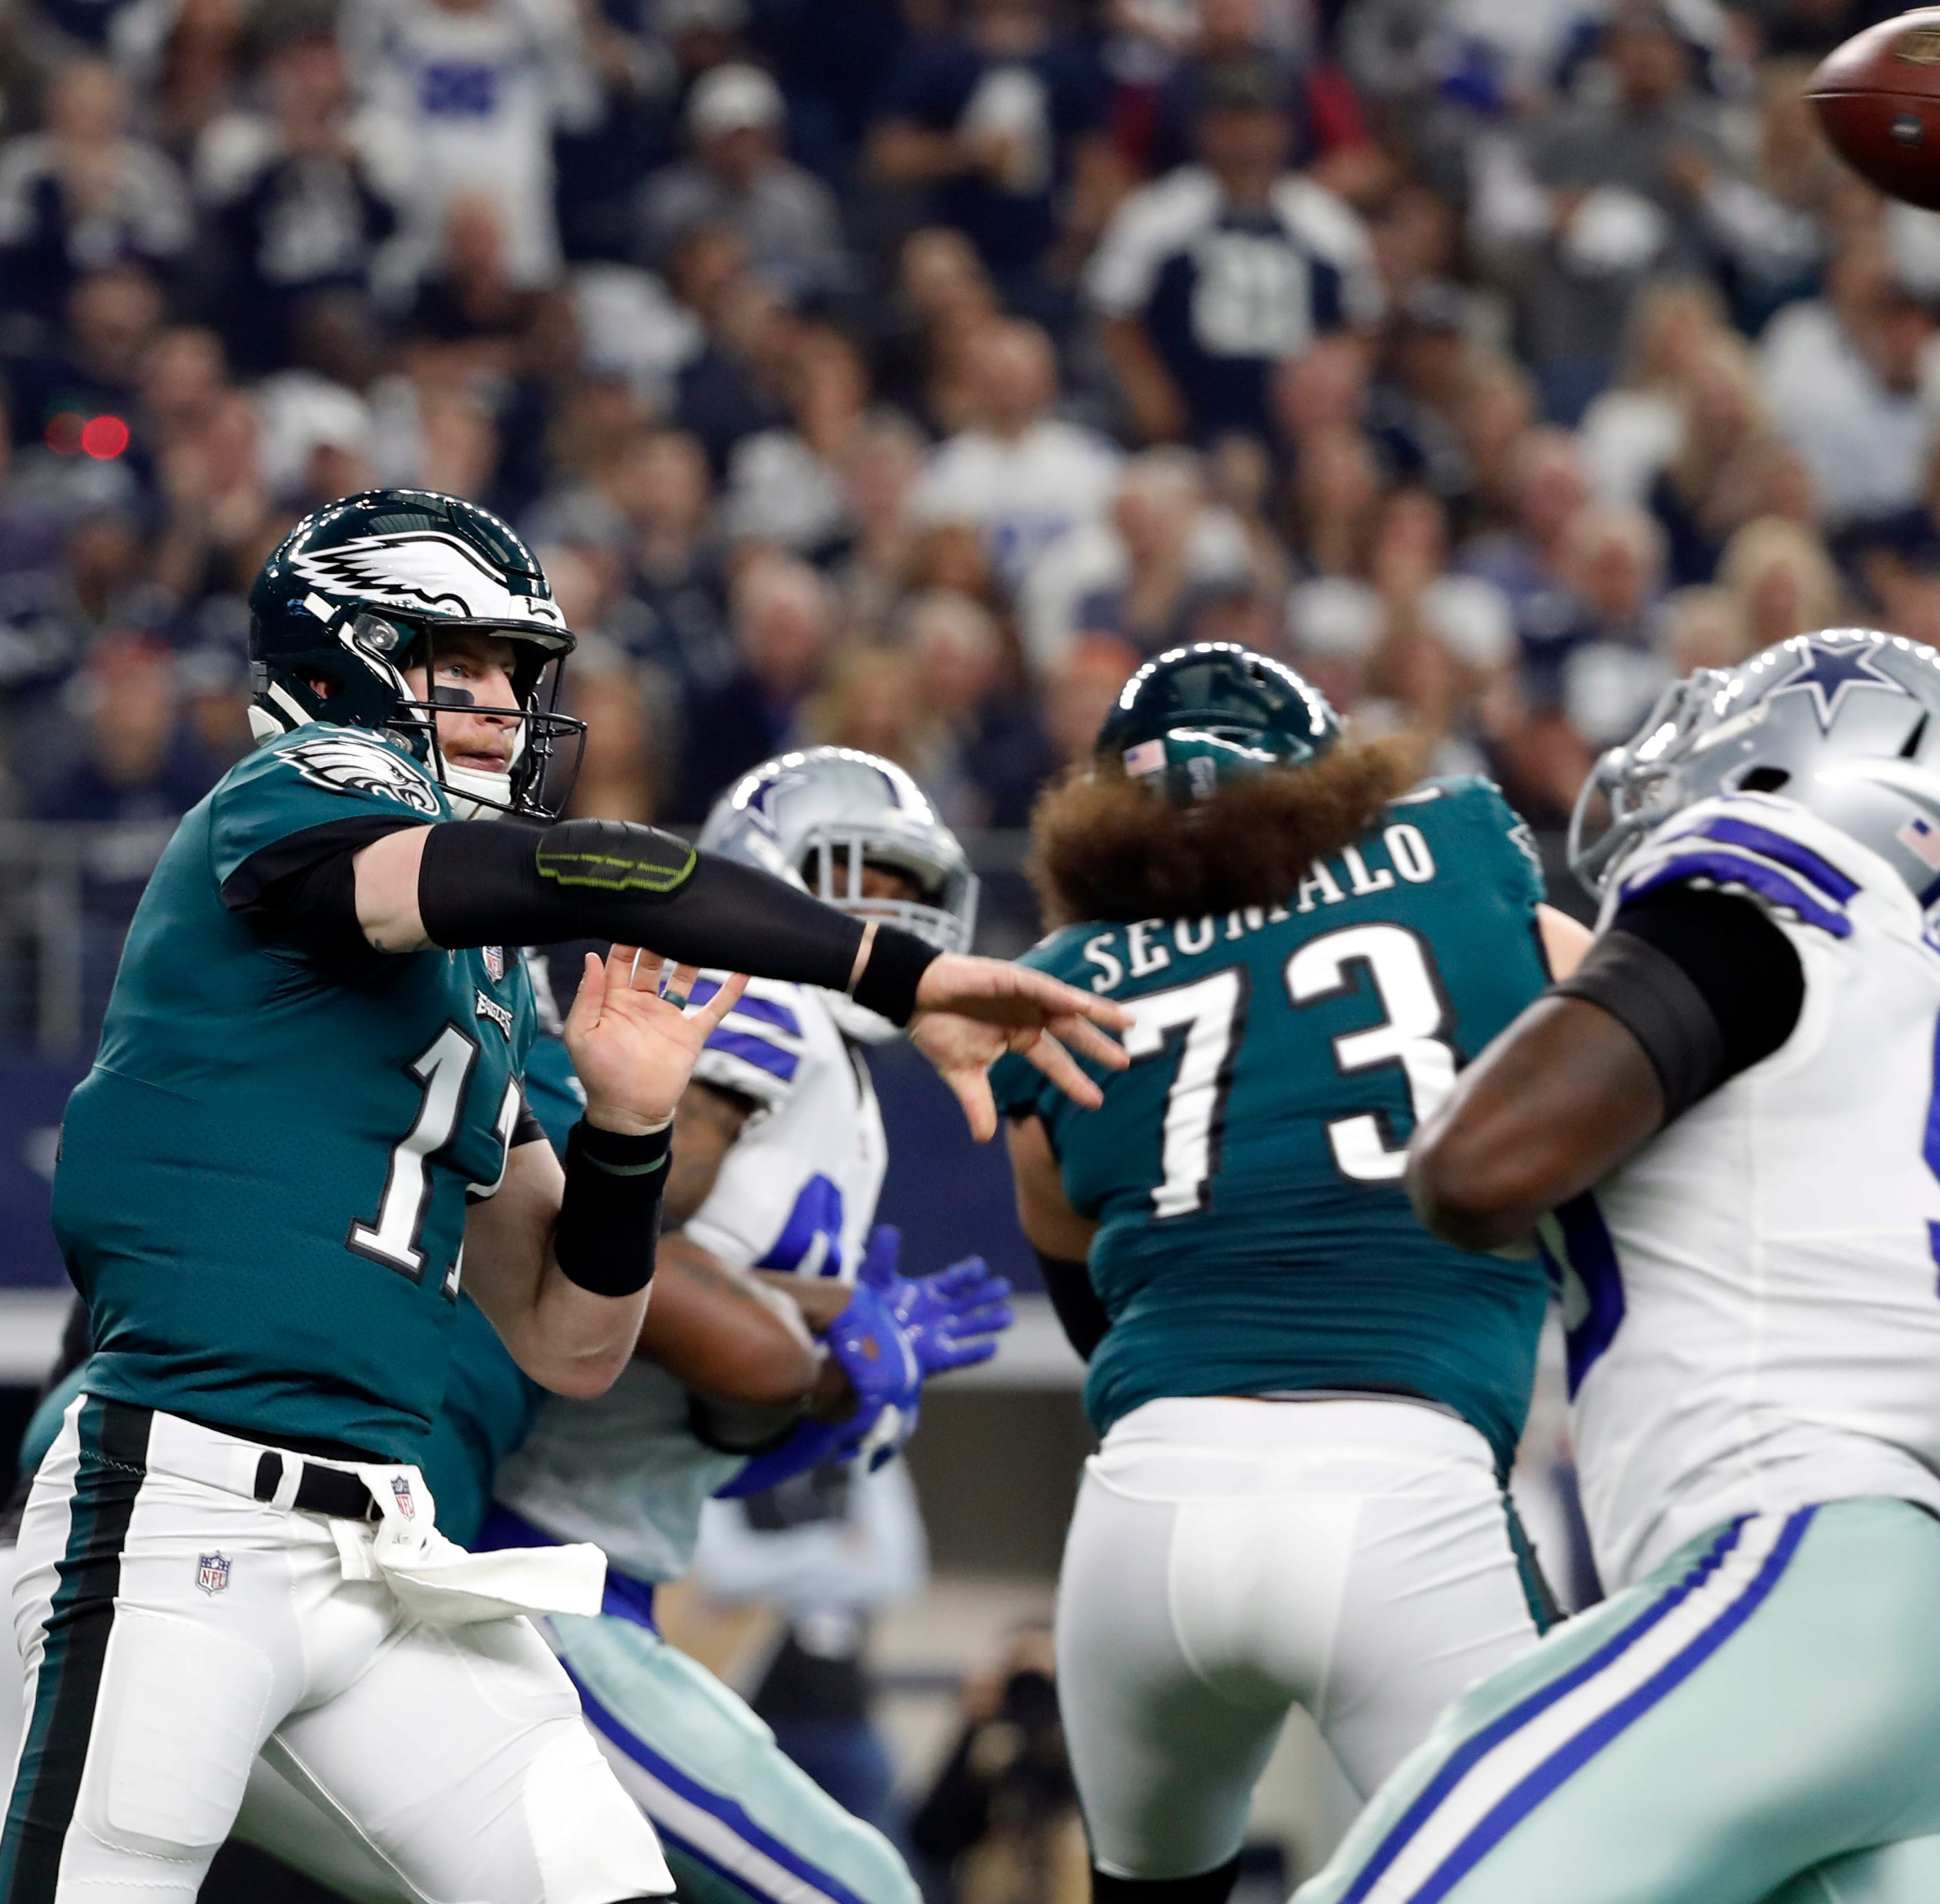 Report: Eagles' Carson Wentz out with back soreness, might not play again this season